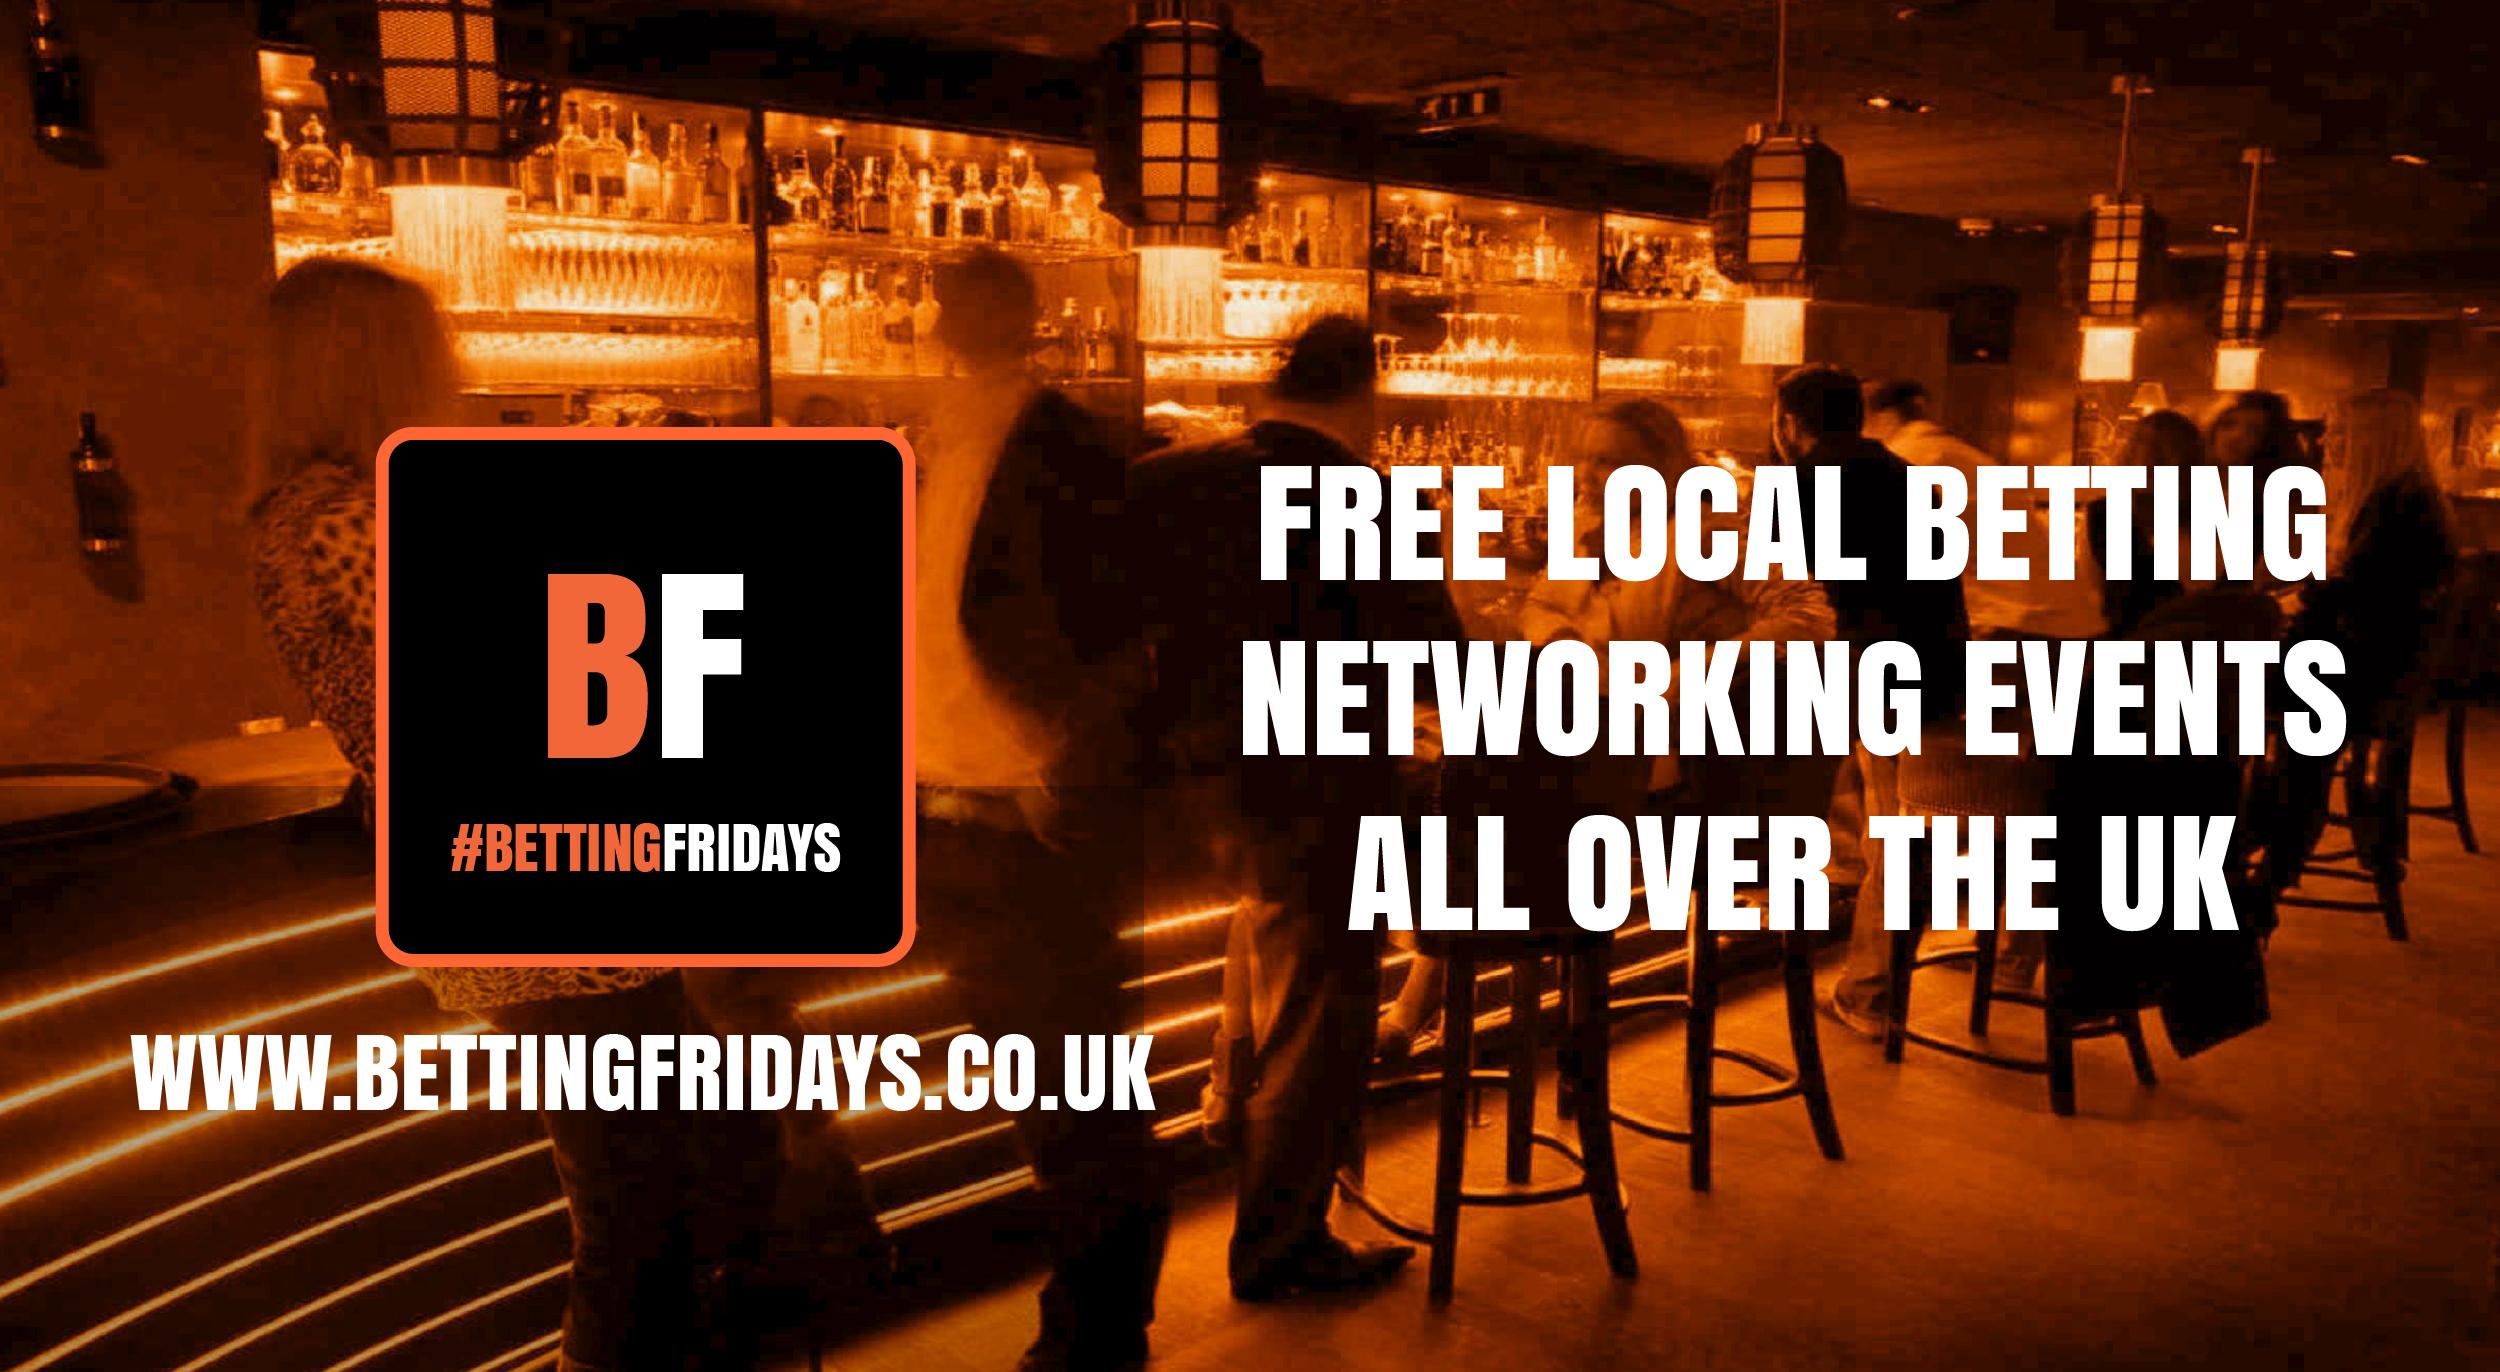 Betting Fridays! Free betting networking event in Glasgow